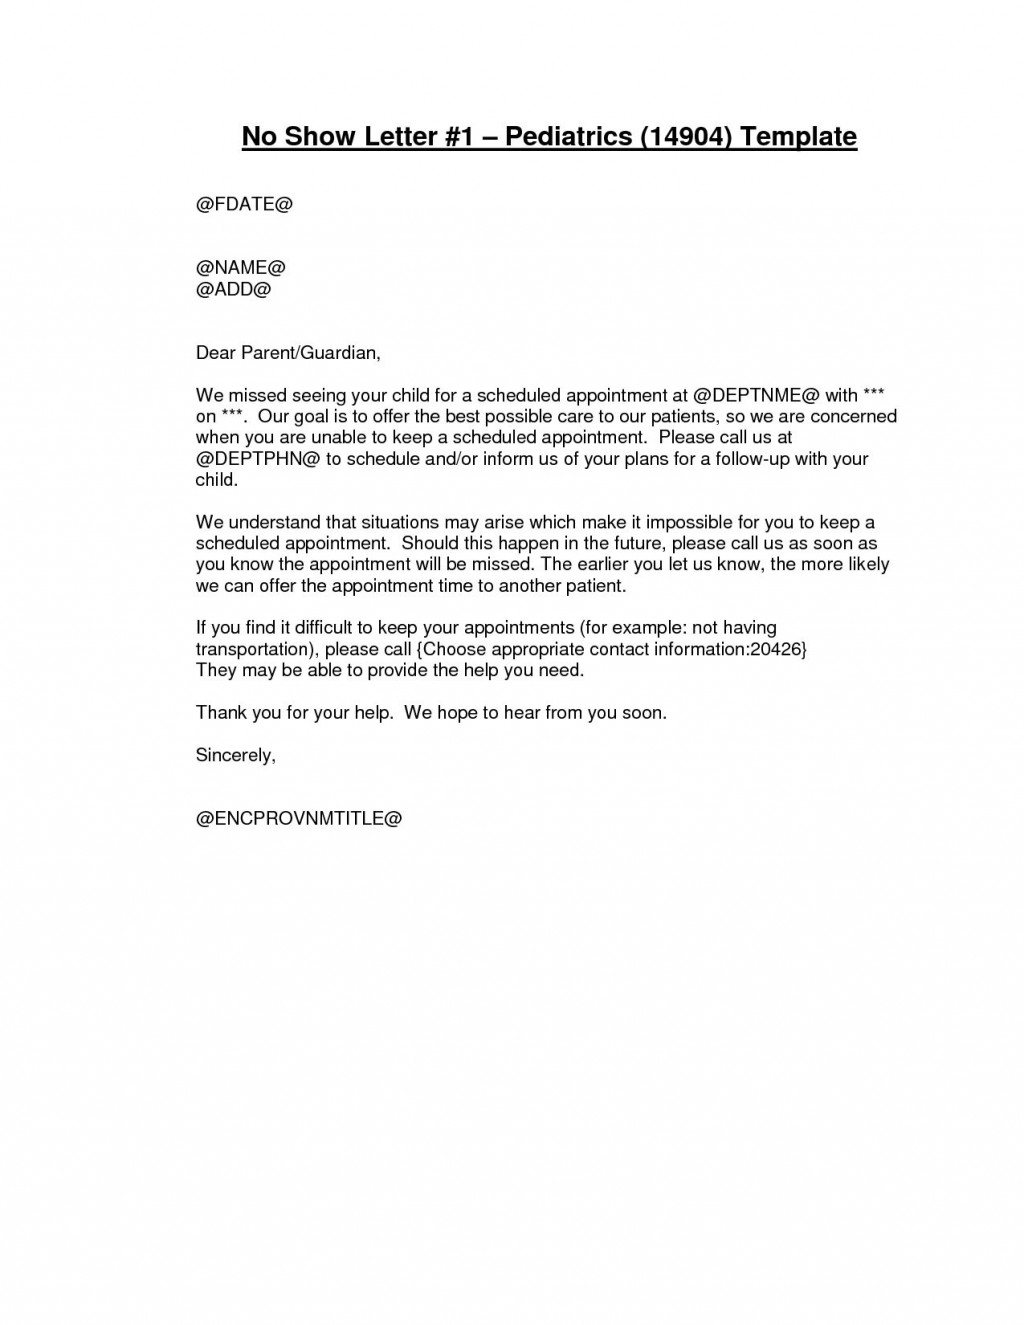 008 Cover Letter Research Paper Template Sensational Large